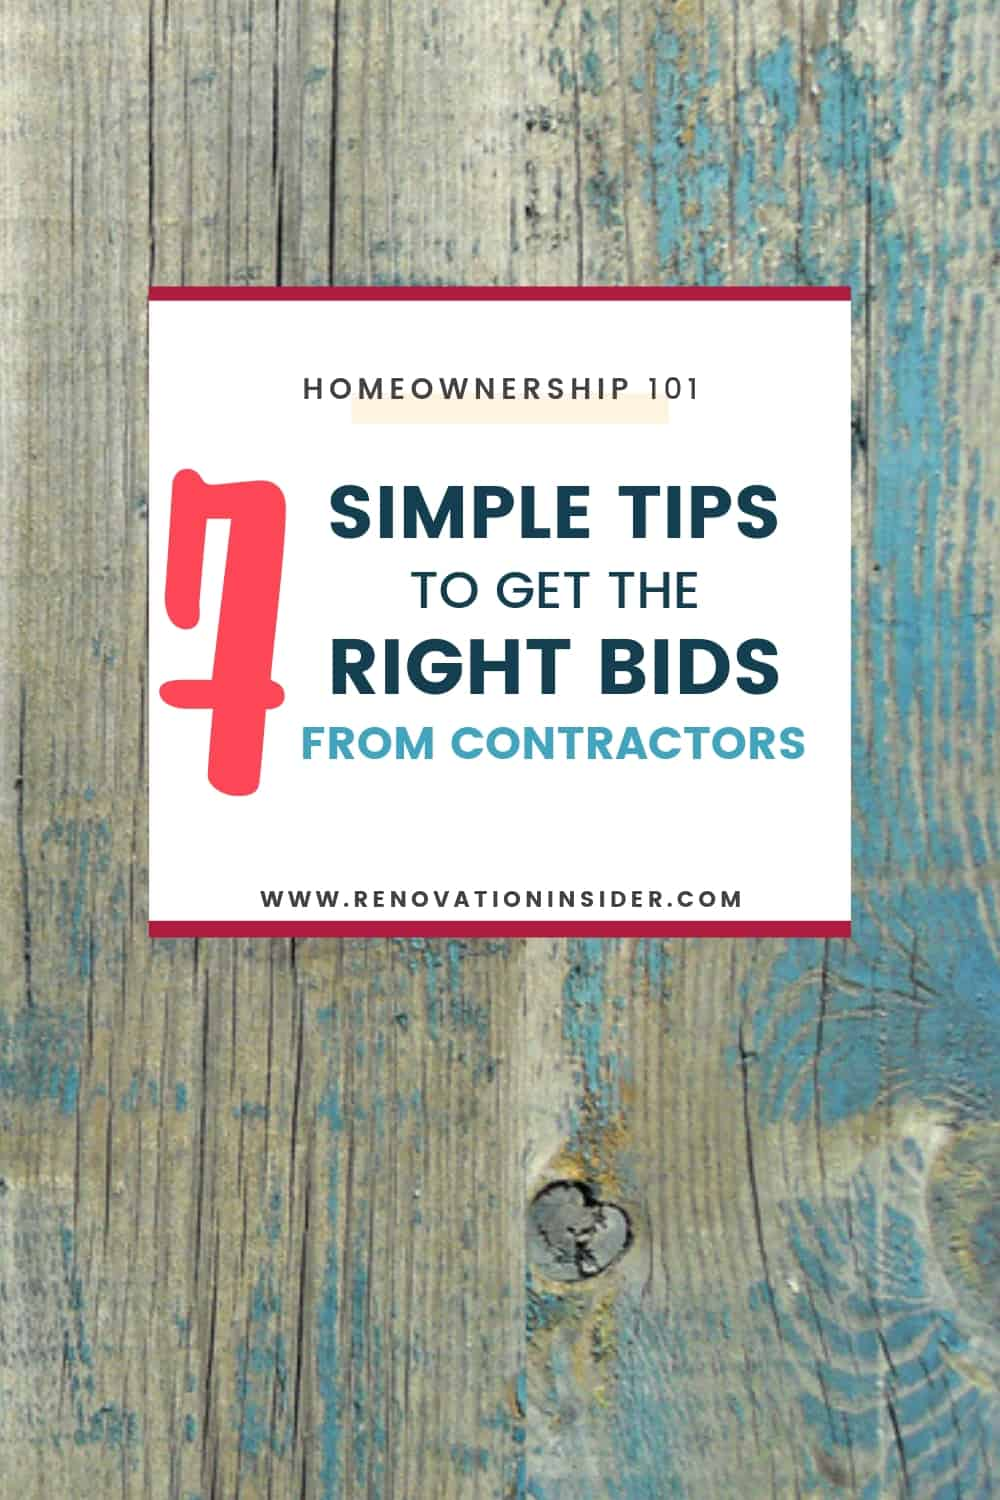 7 Simple Tips To Get Good Bids from Contractors